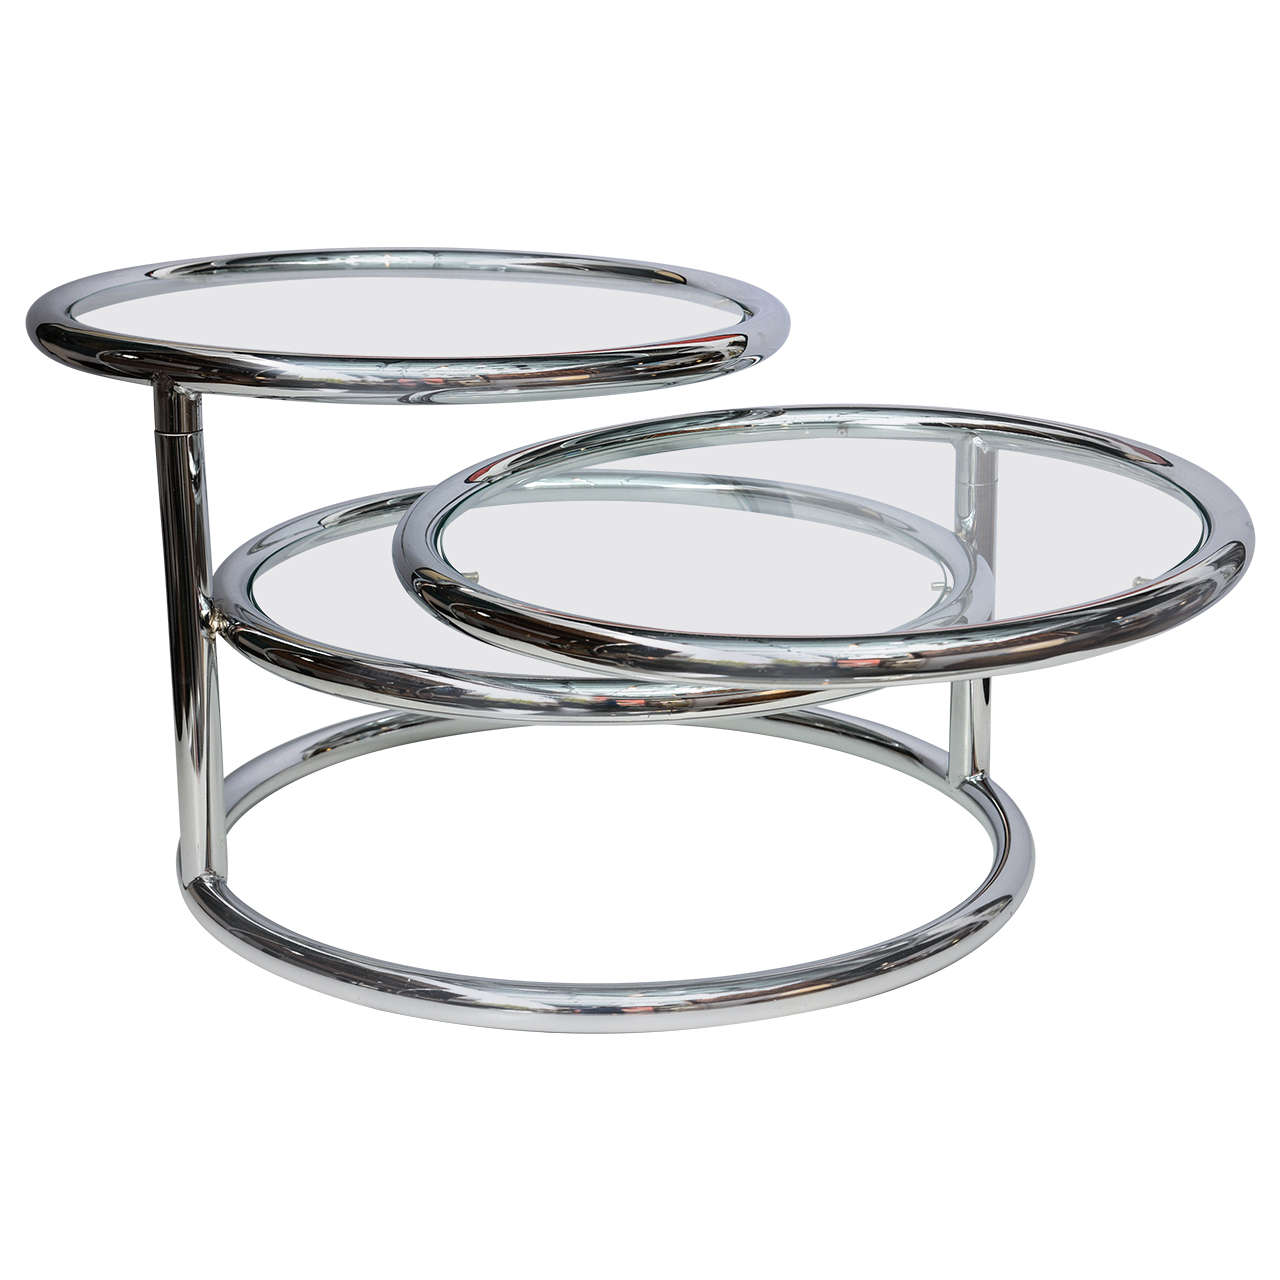 Milo Baughman Style Swivel Tiered Circles Coffee Table At 1stdibs